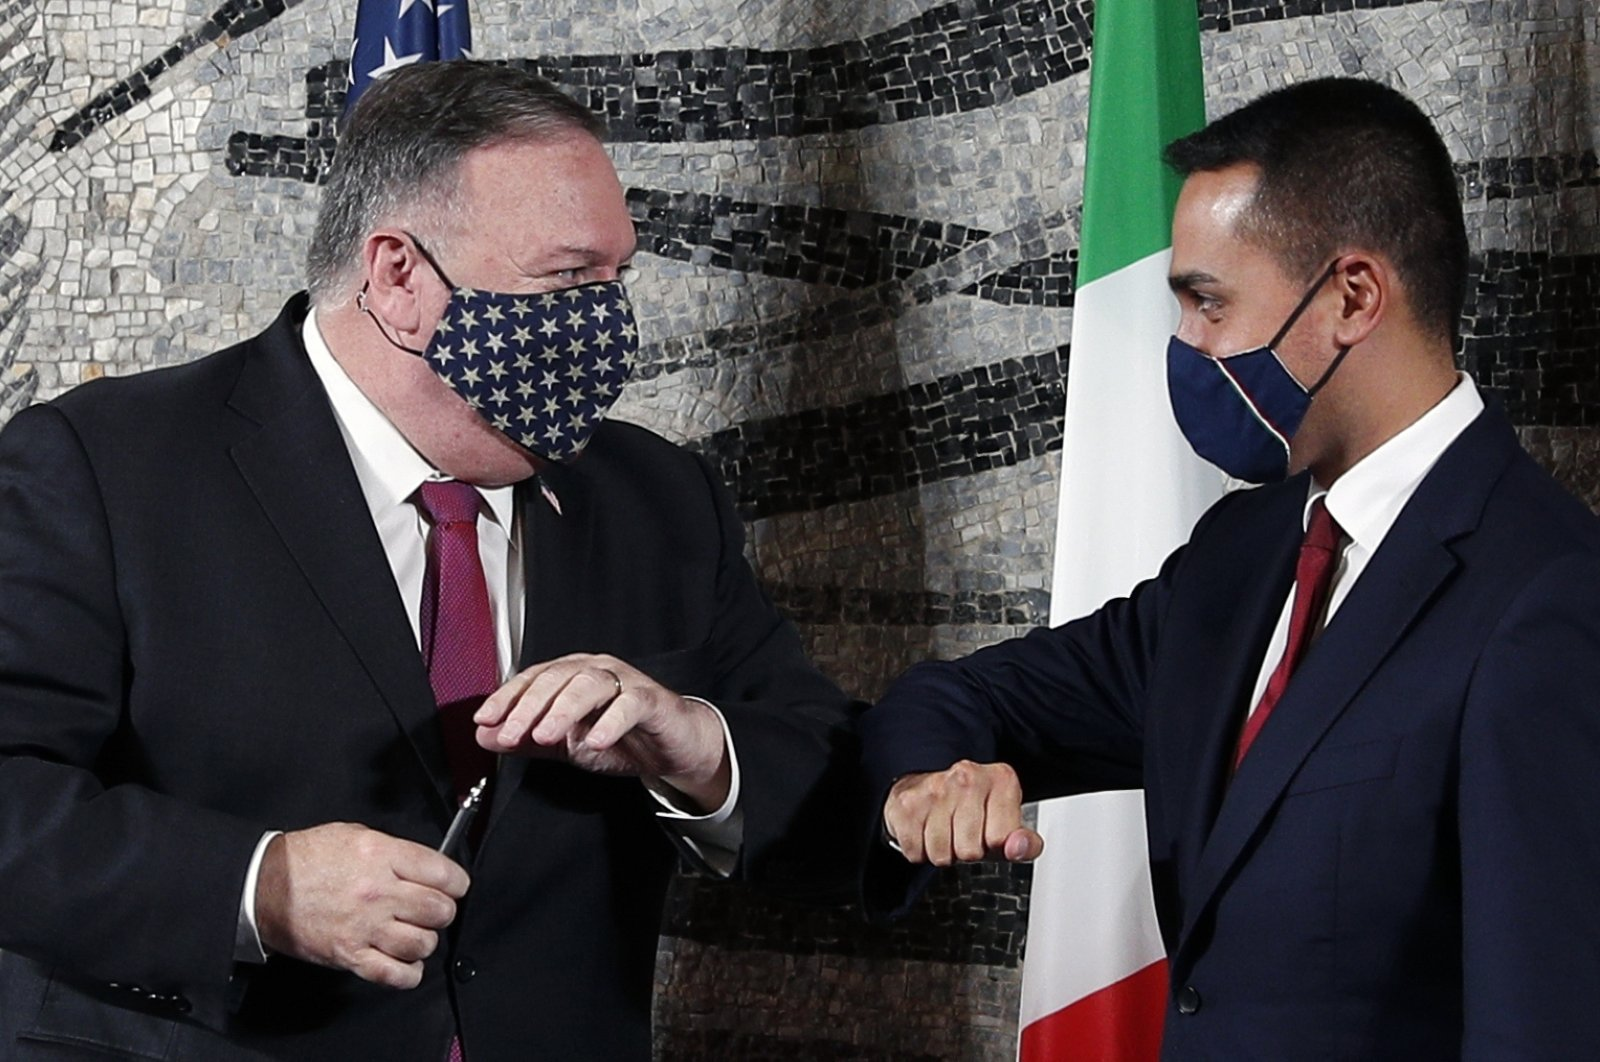 U.S. Secretary of State Mike Pompeo (L), bumps elbows with Italian Foreign Minister Luigi Di Maio in Rome, Sept. 30, 2020. (AP Photo)